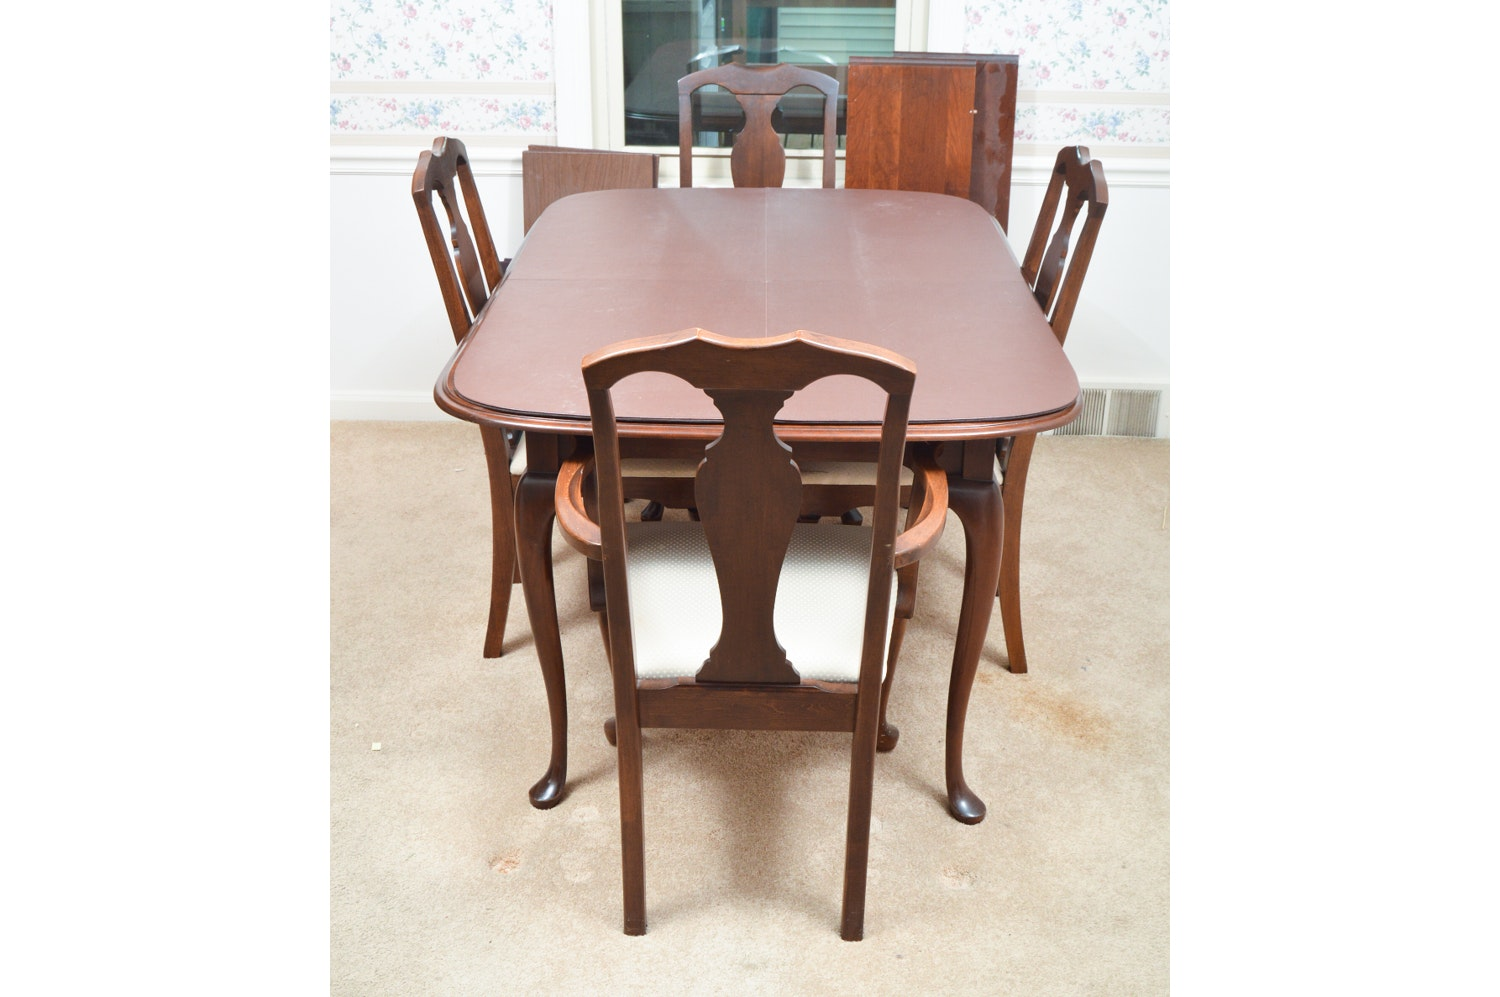 Vintage Queen Anne Style Dining Table with Chairs by Crawford Furniture